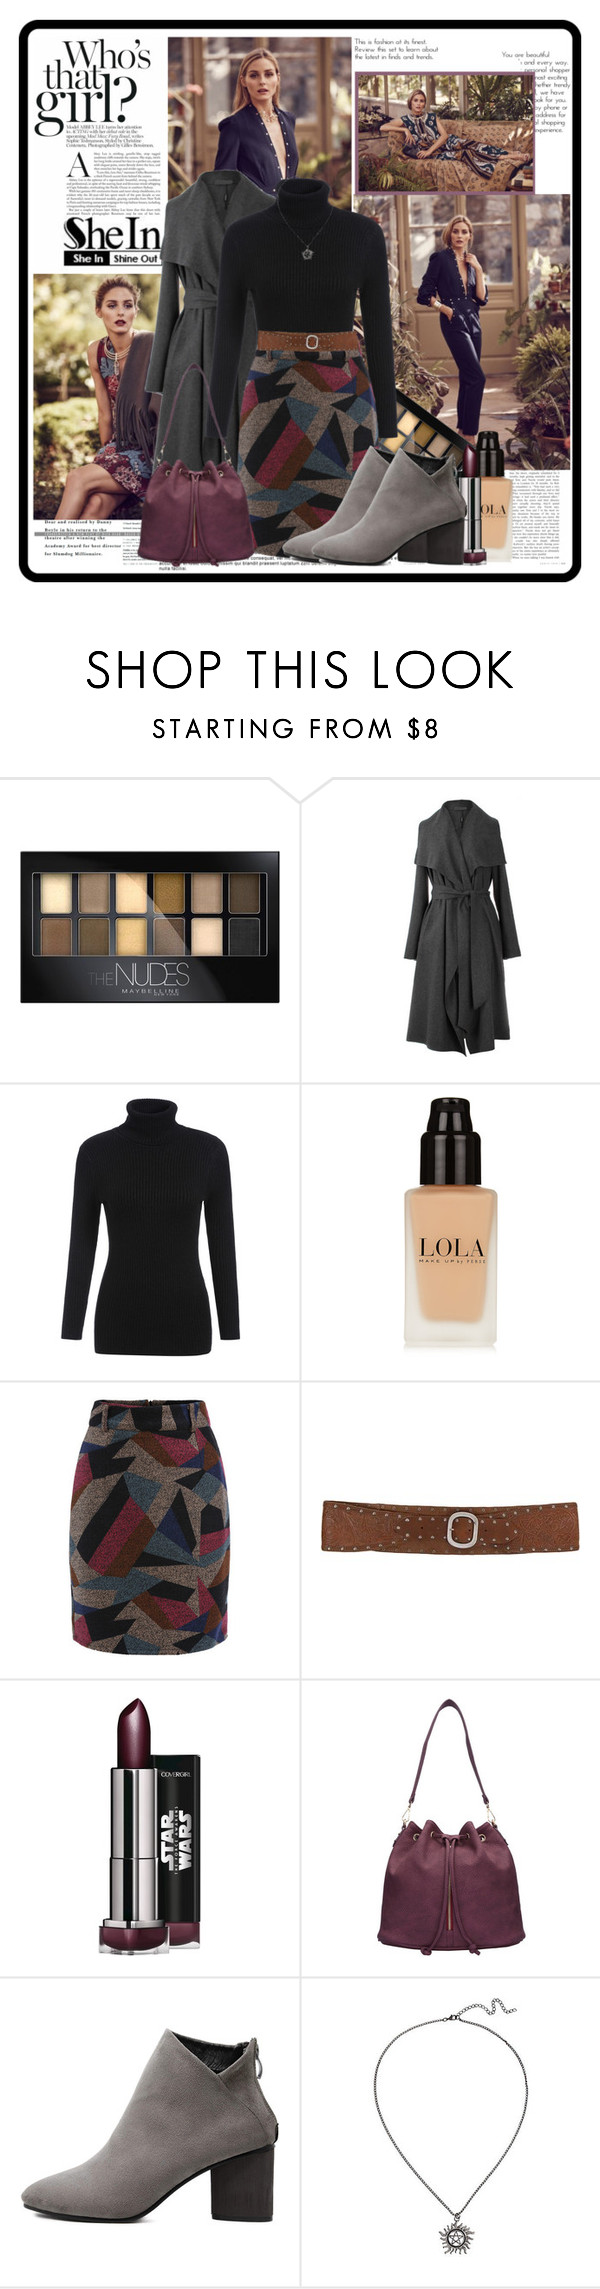 """Olivia's way"" by cindy88 ❤ liked on Polyvore featuring BaubleBar, Maybelline, BKE, women's clothing, women's fashion, women, female, woman, misses and juniors"